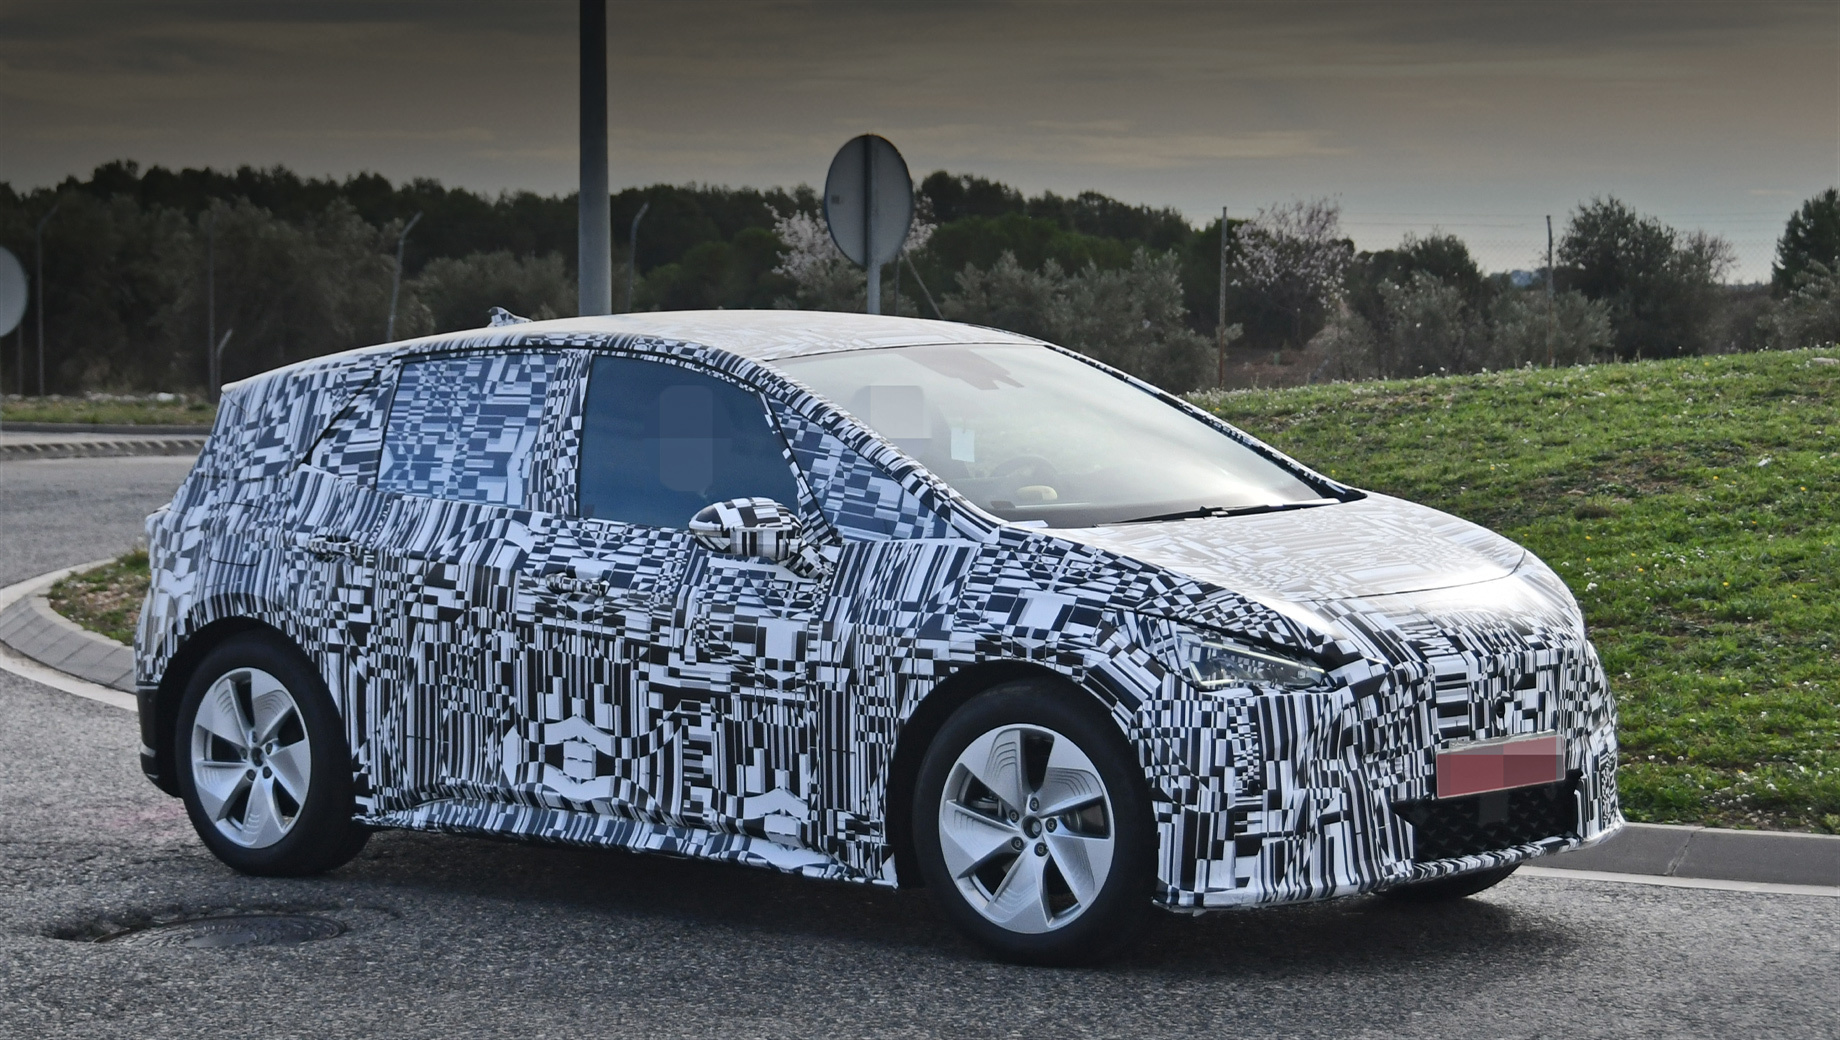 Seat showed us the el-Born Concept (see video) nearly a year ago. The first pre-production sample was sighted on the streets last fall, but this one looks much better and more production-ready.